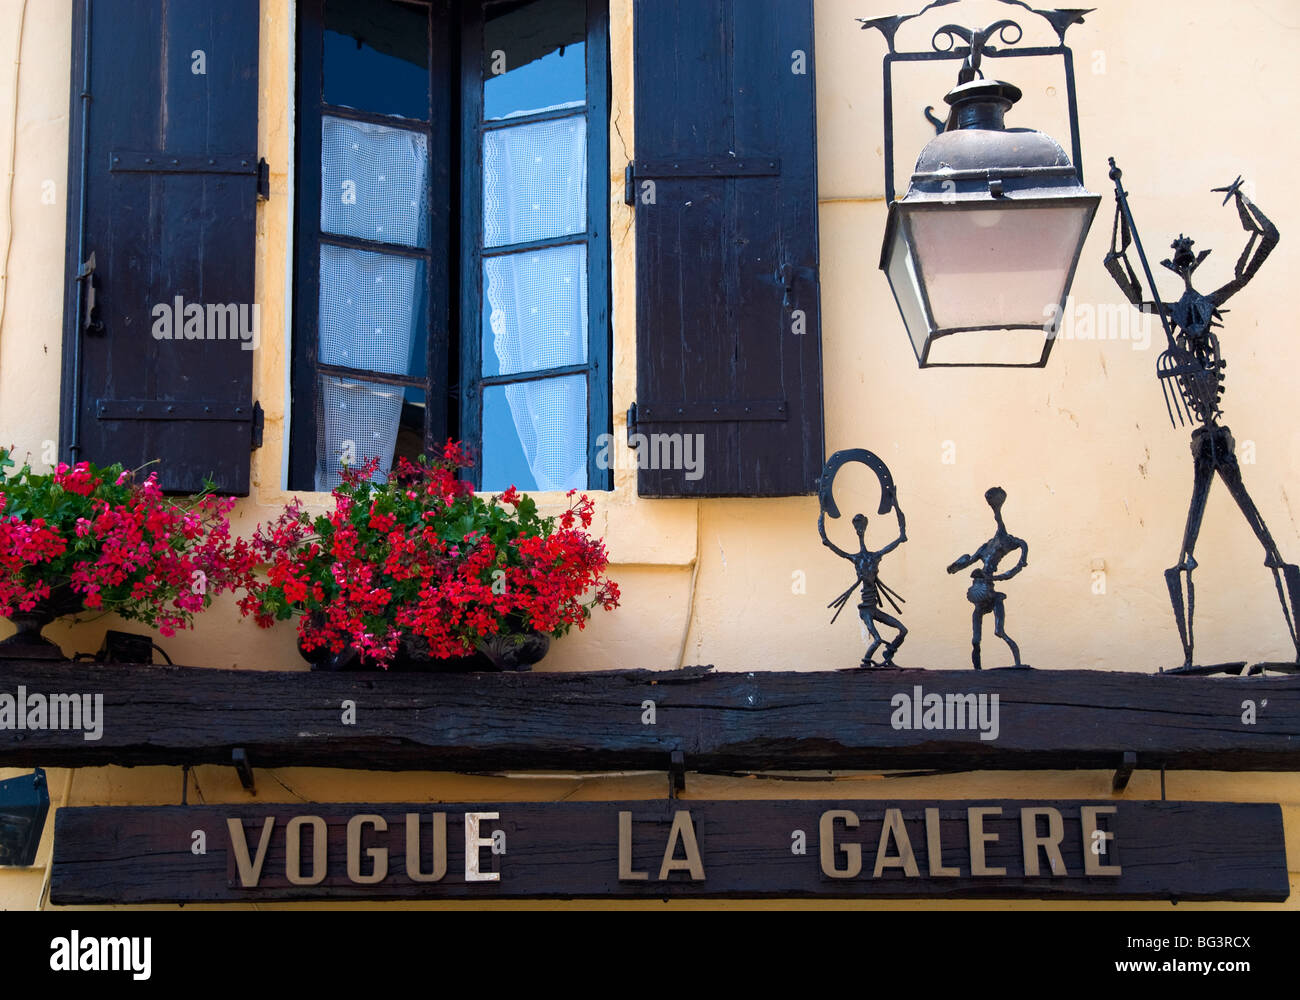 Street scene of a gallery in Aigues Mortes, Provence, France - Stock Image